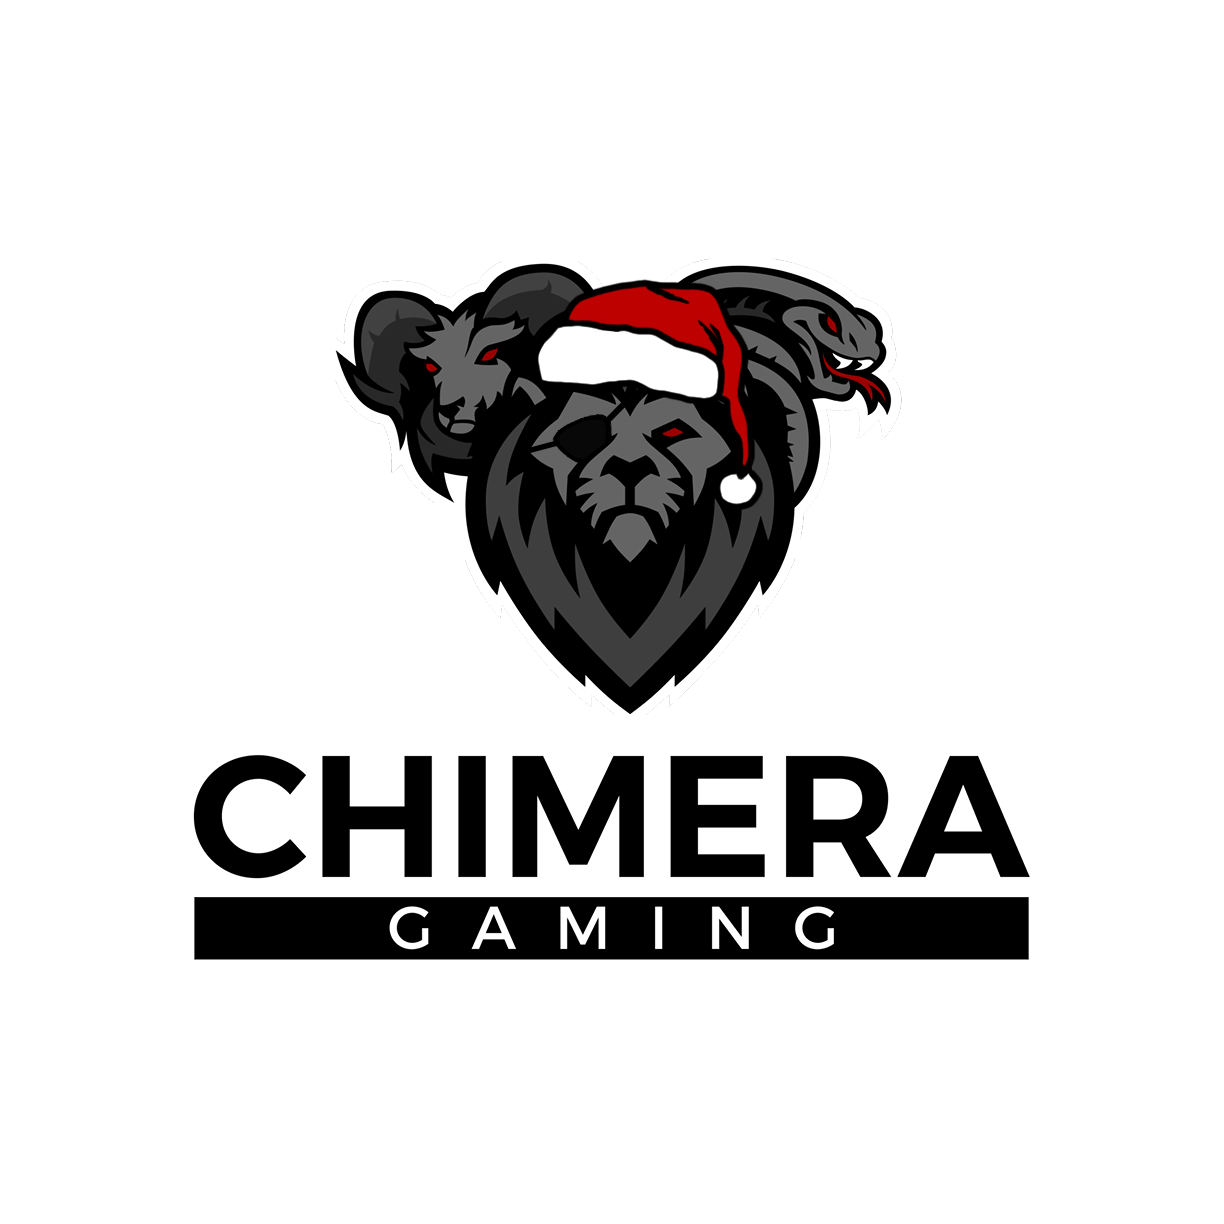 Chimera Gaming Gift Card | Chimera Gaming